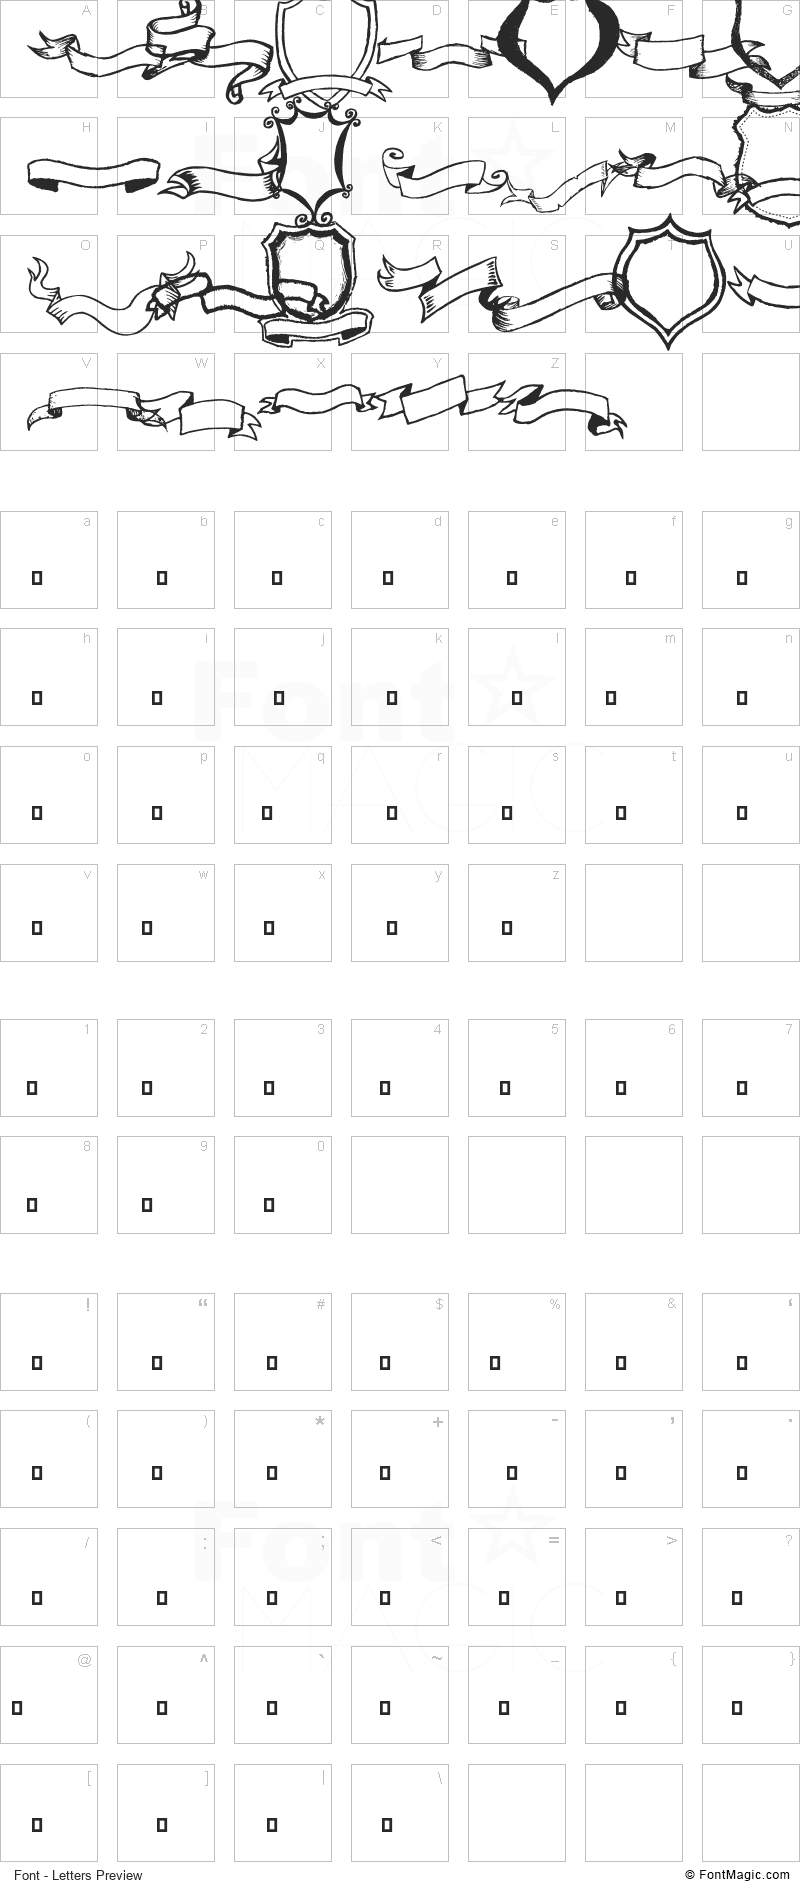 Frames 'n Riboons Font - All Latters Preview Chart